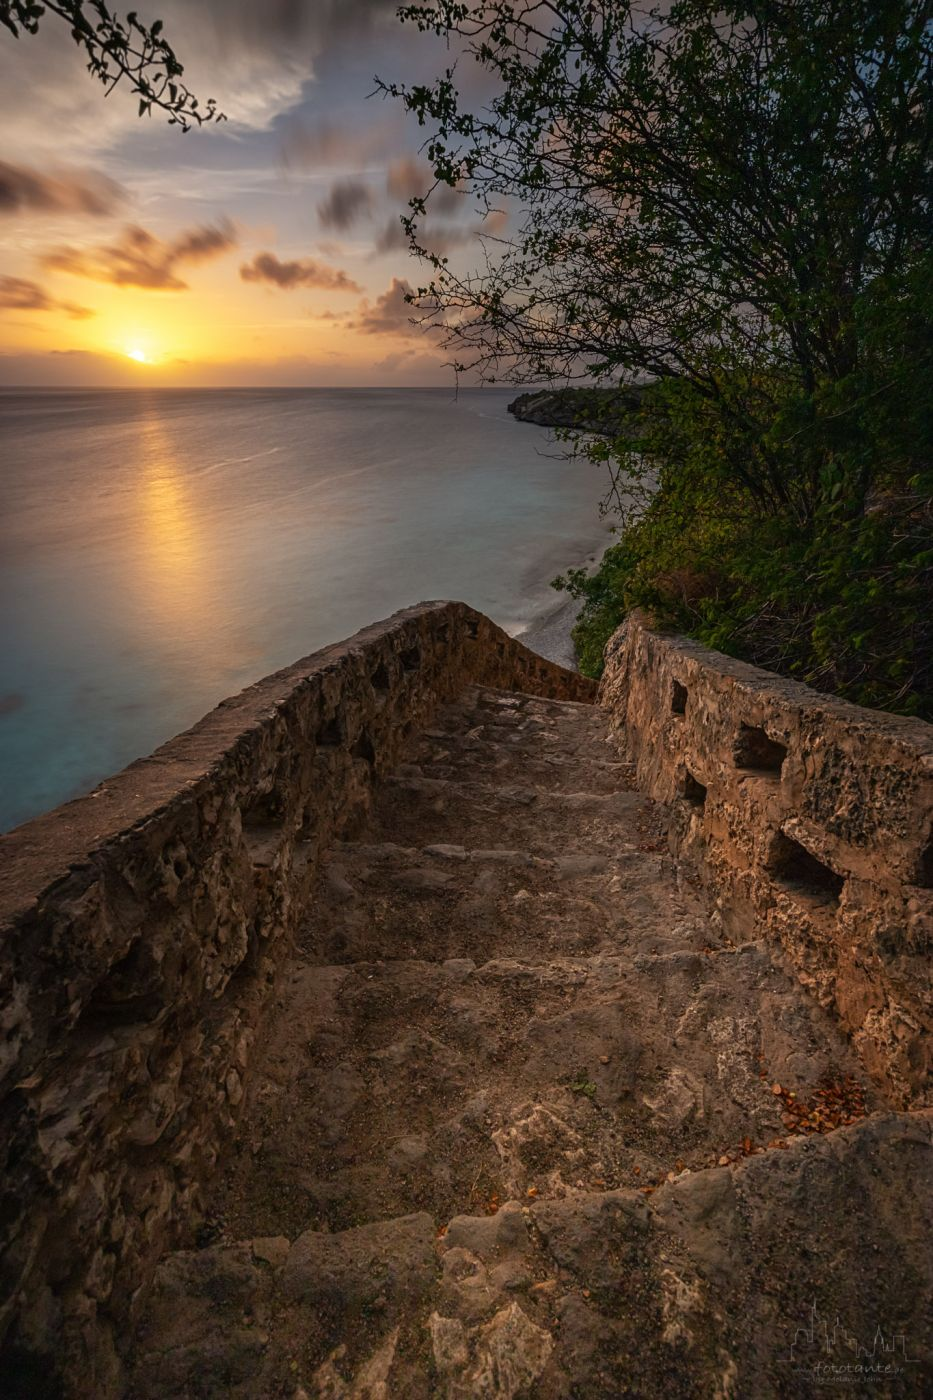 1000 Steps on Bonaire, Bonaire